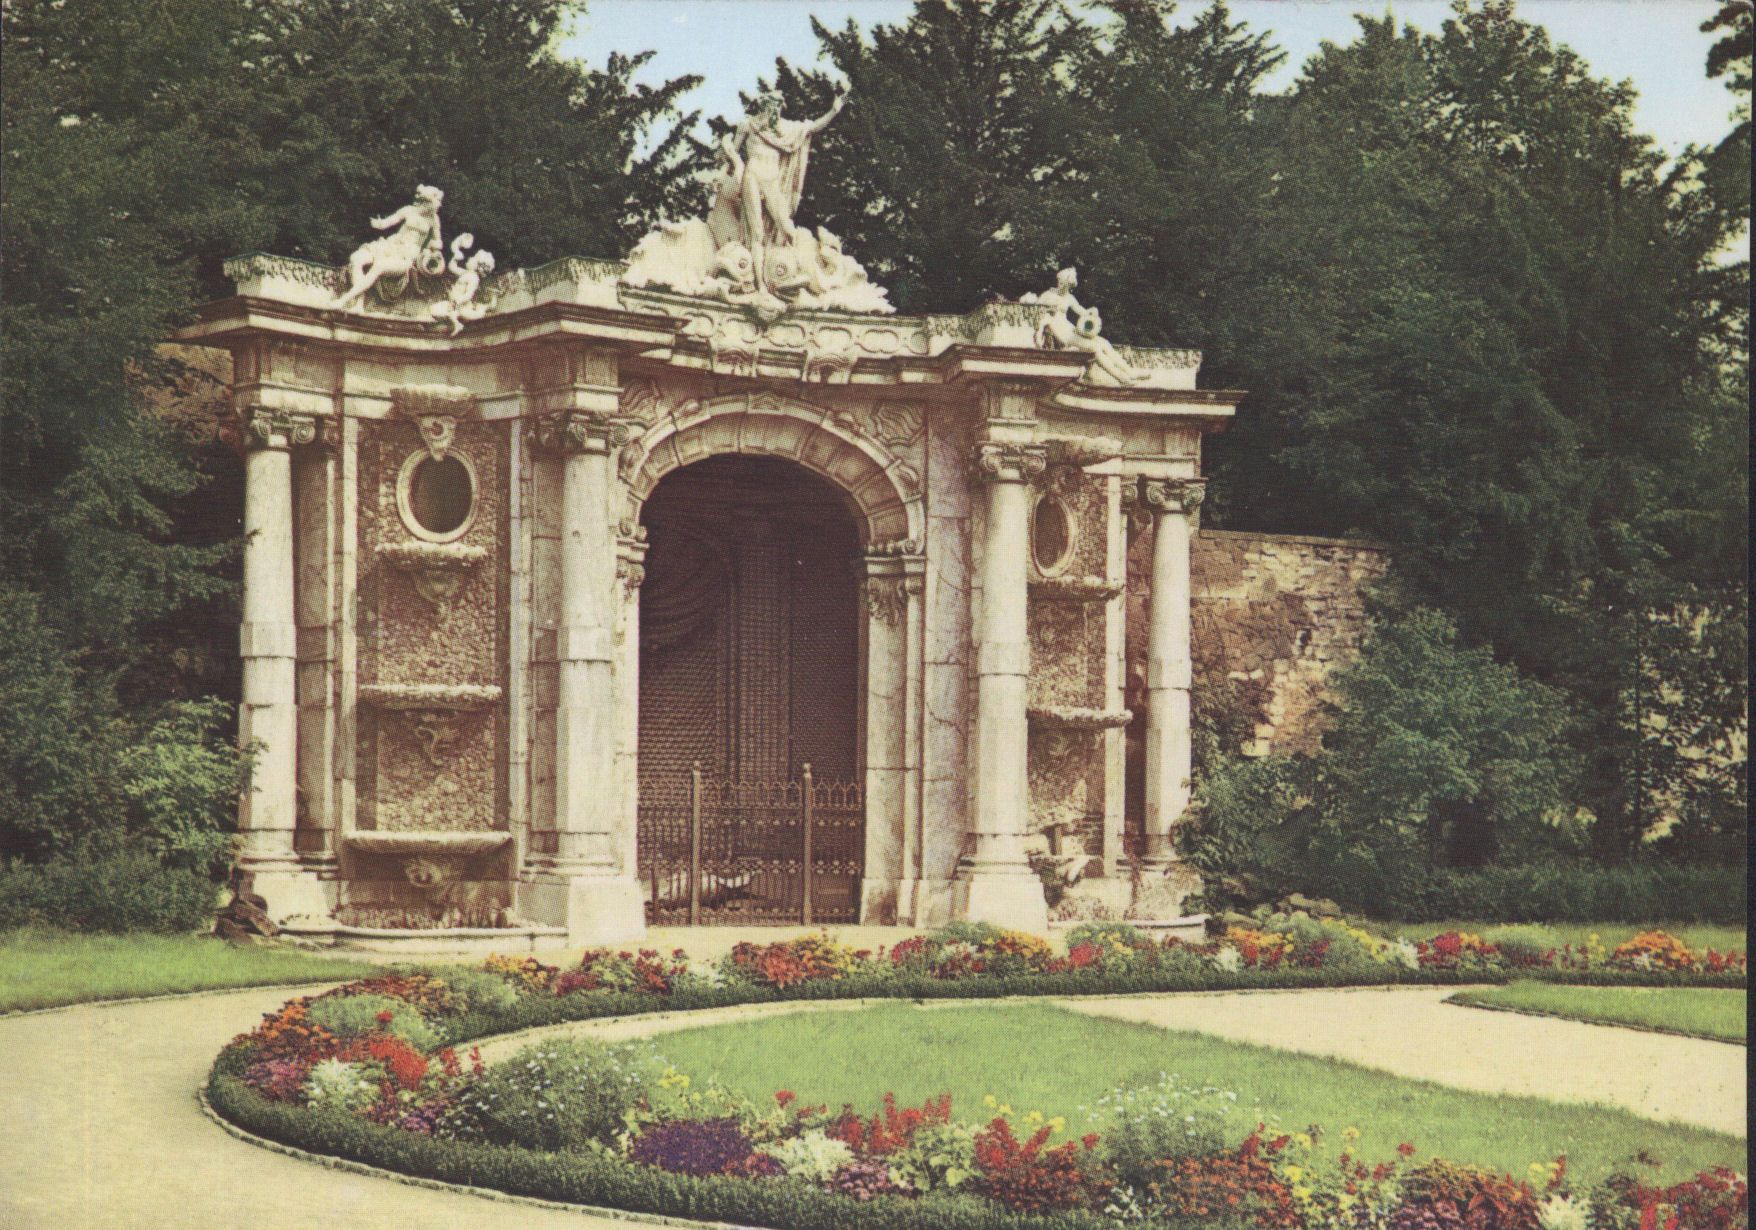 The Neptune Grotto Close To The Obelisk Entrance In Sanssouci Park Potsdam Germany Was Created By Fre Frederick The Great Potsdam Potsdam Germany